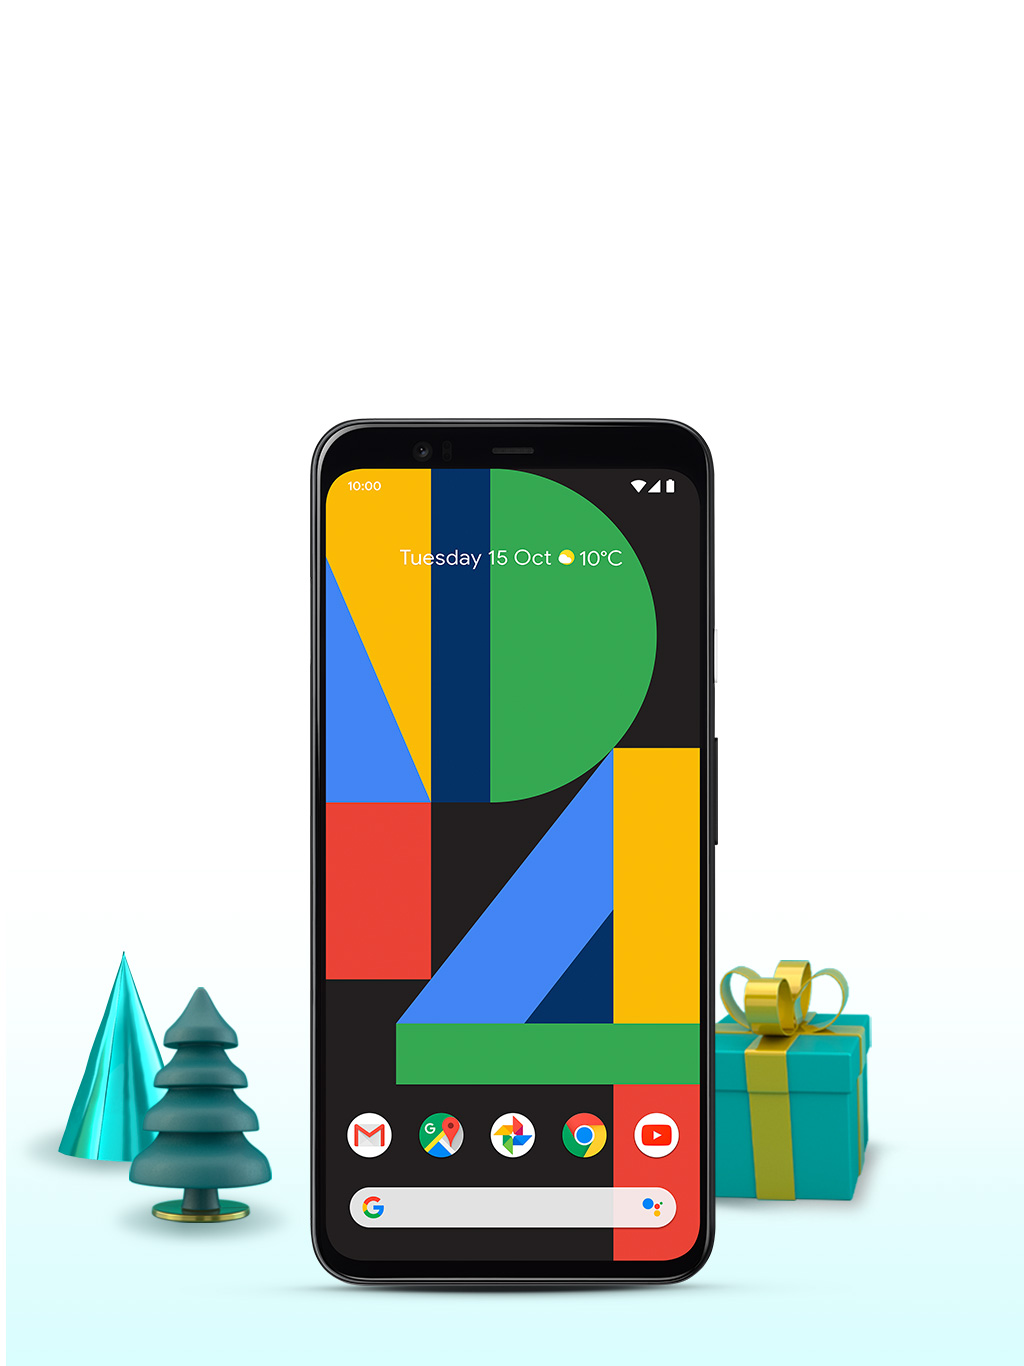 Google Pixel 4 on Christmas backdrop